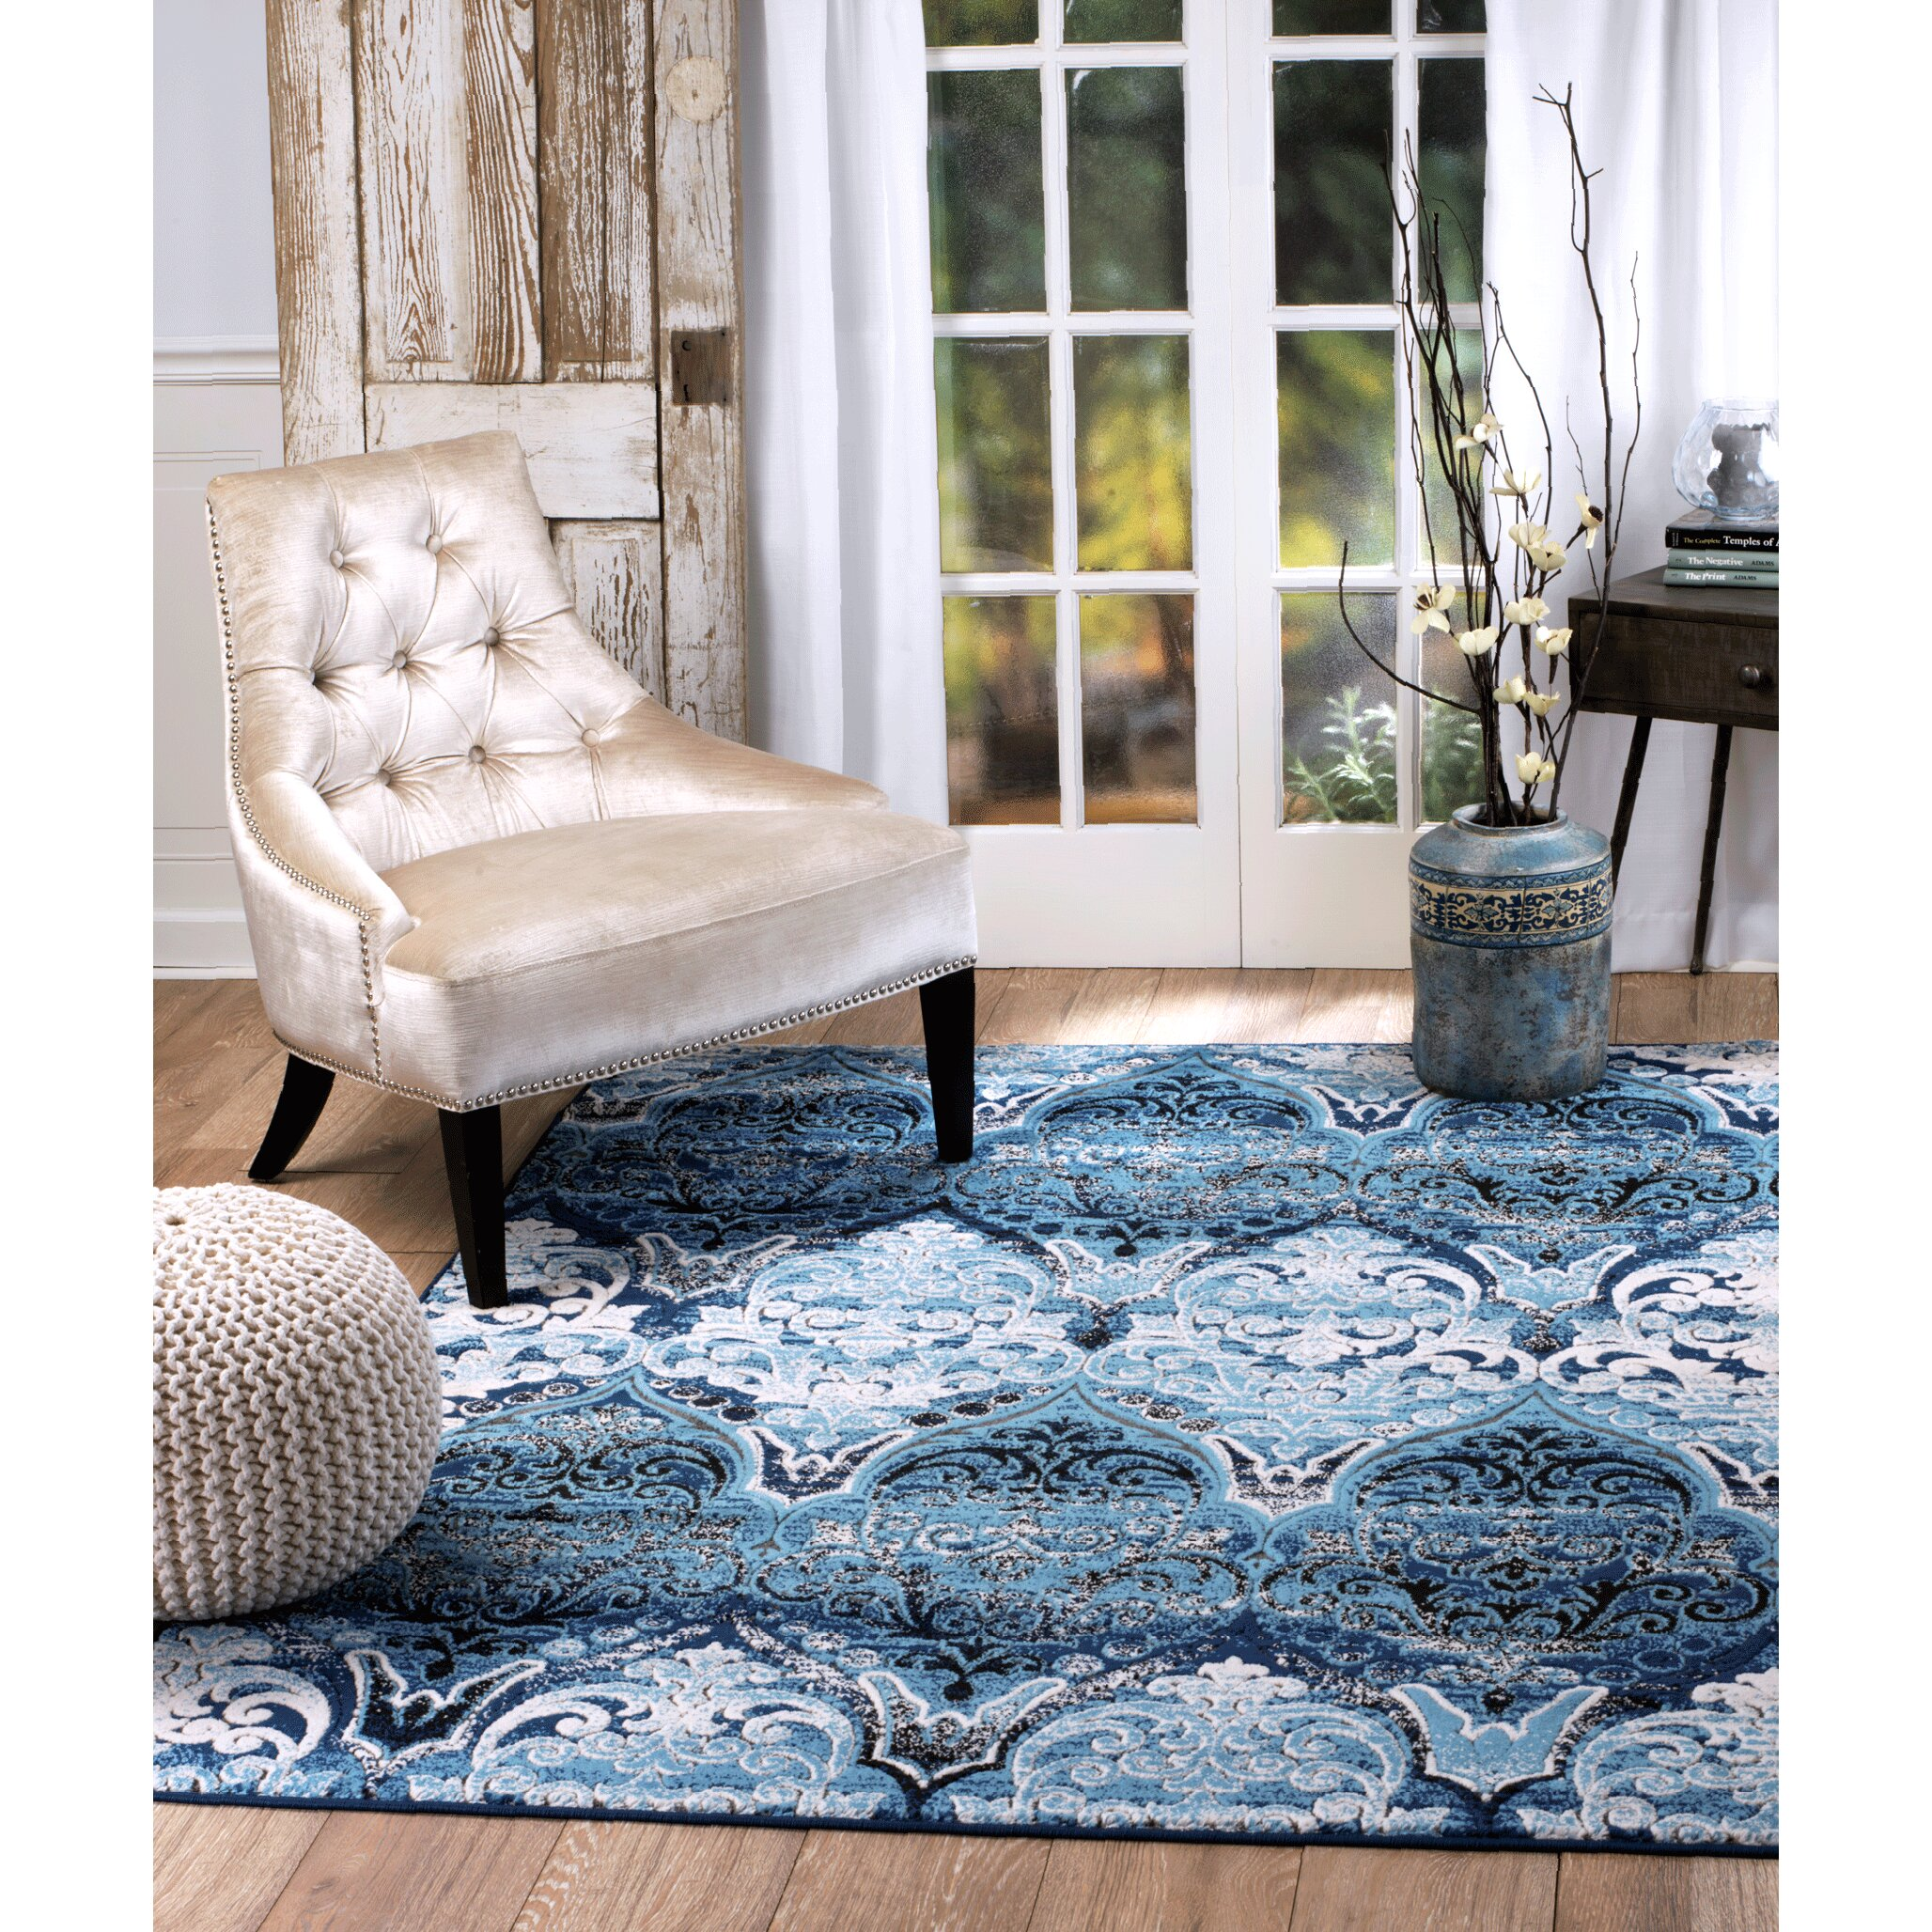 rug and decor inc chatham blue area rug amp reviews